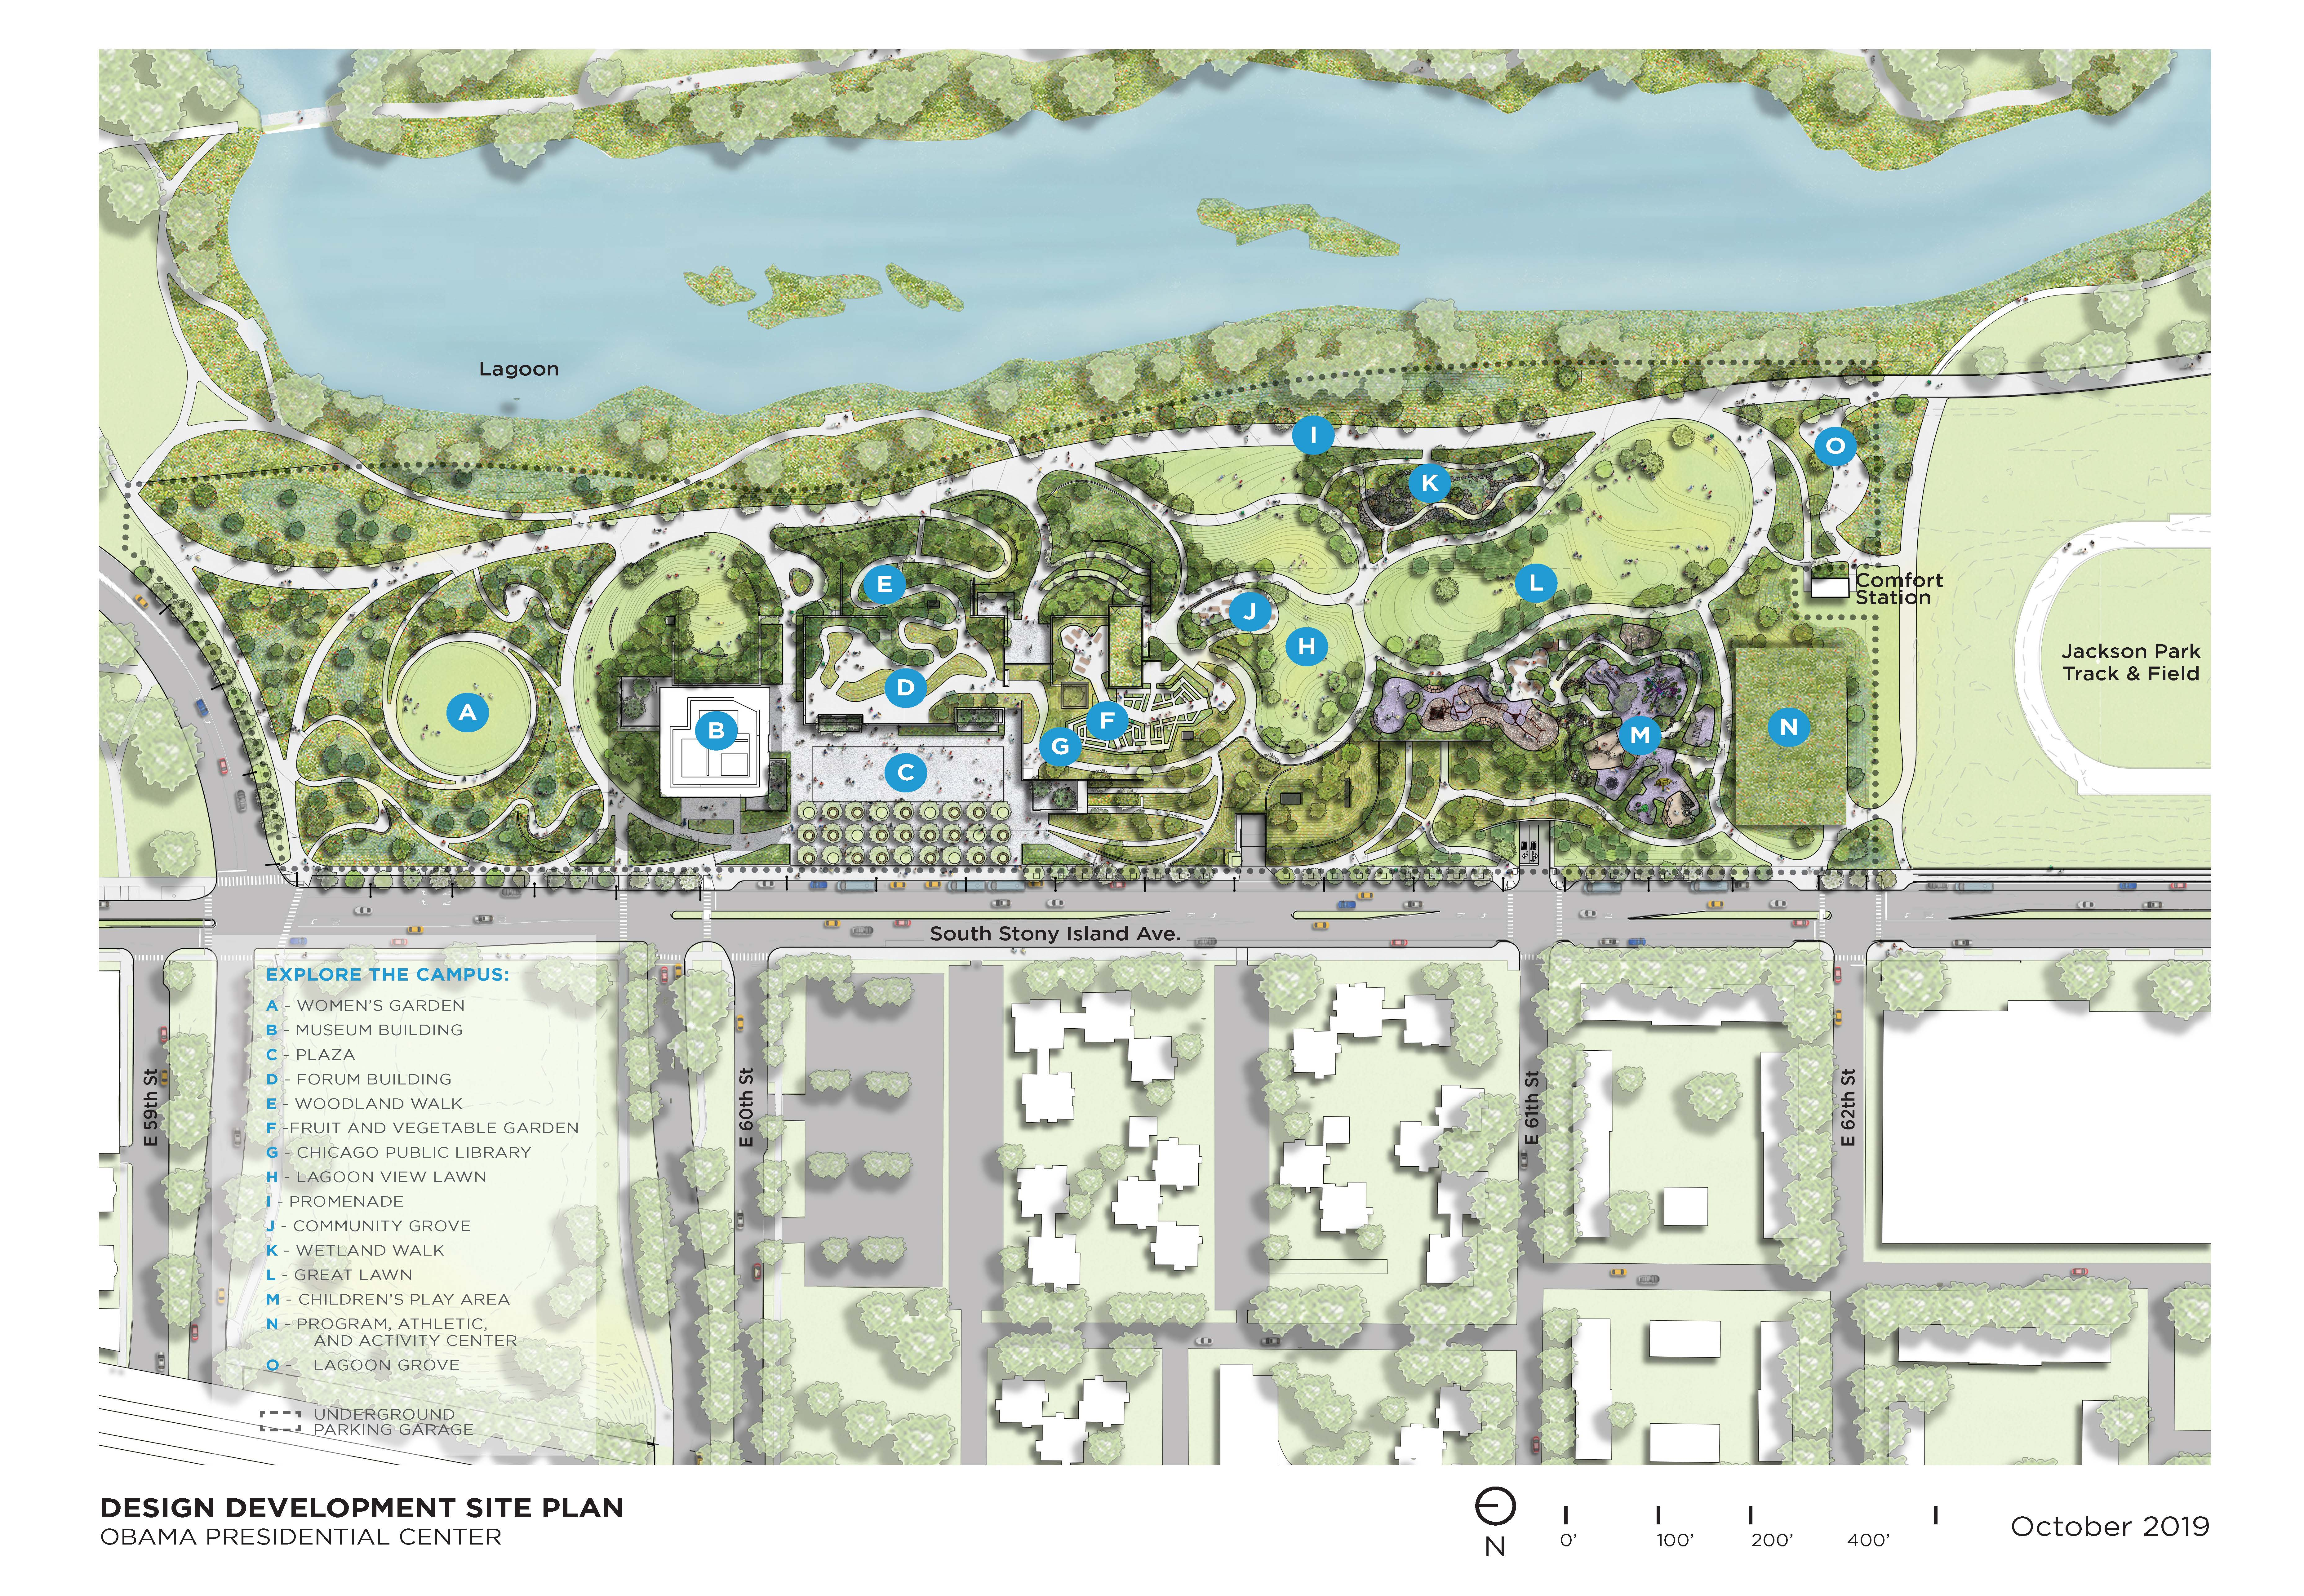 campus site plan from above